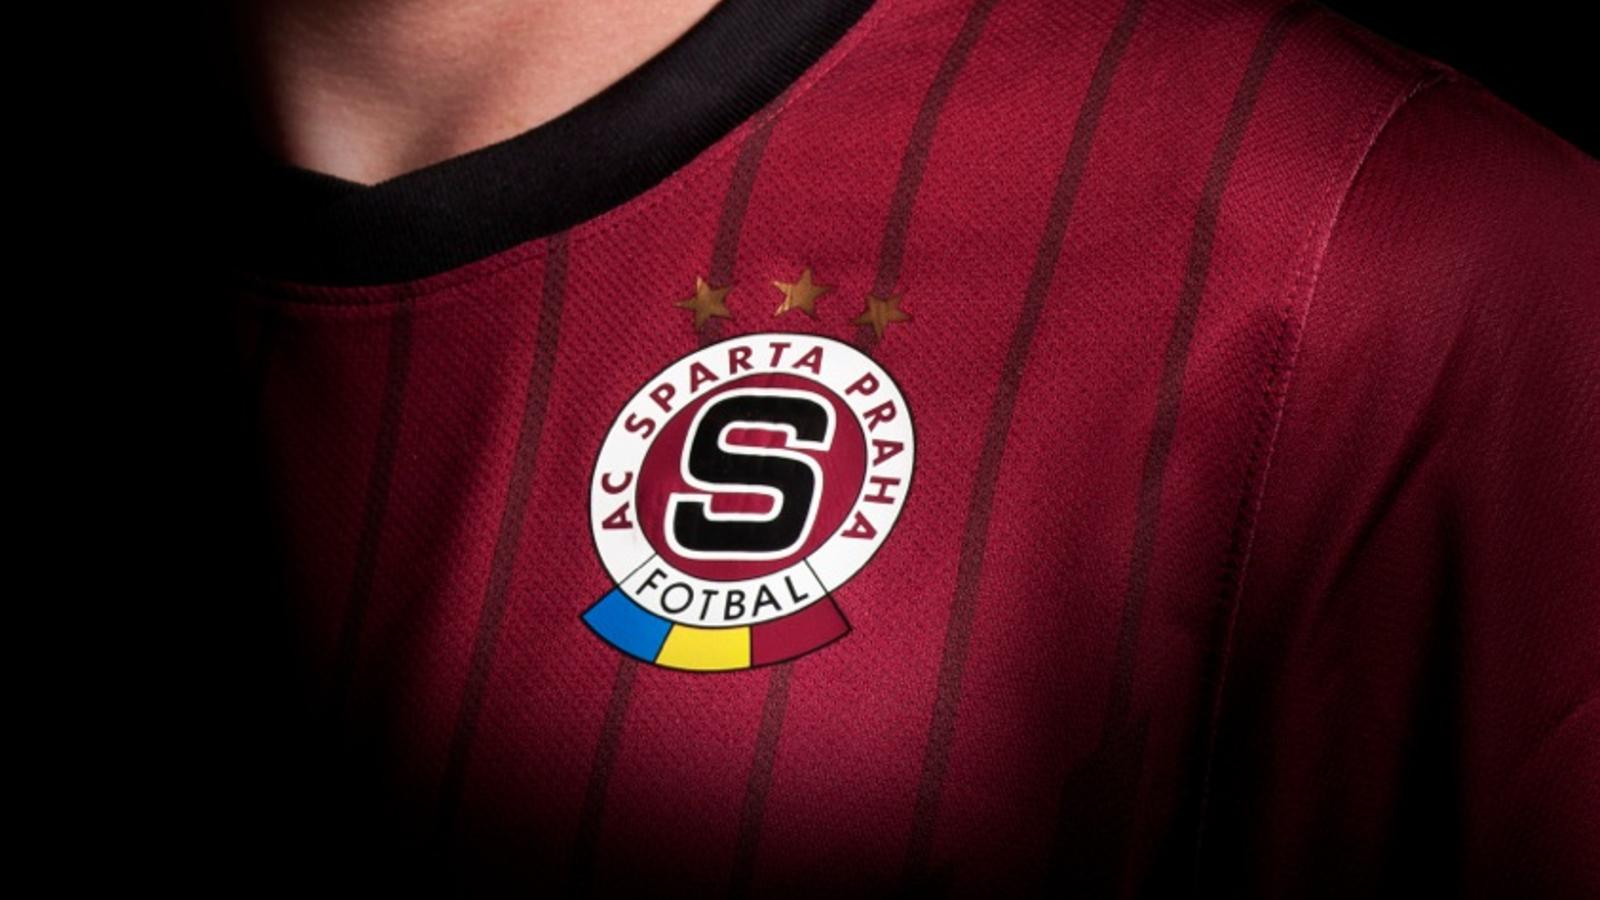 Sparta_Home_Kit_detail_01